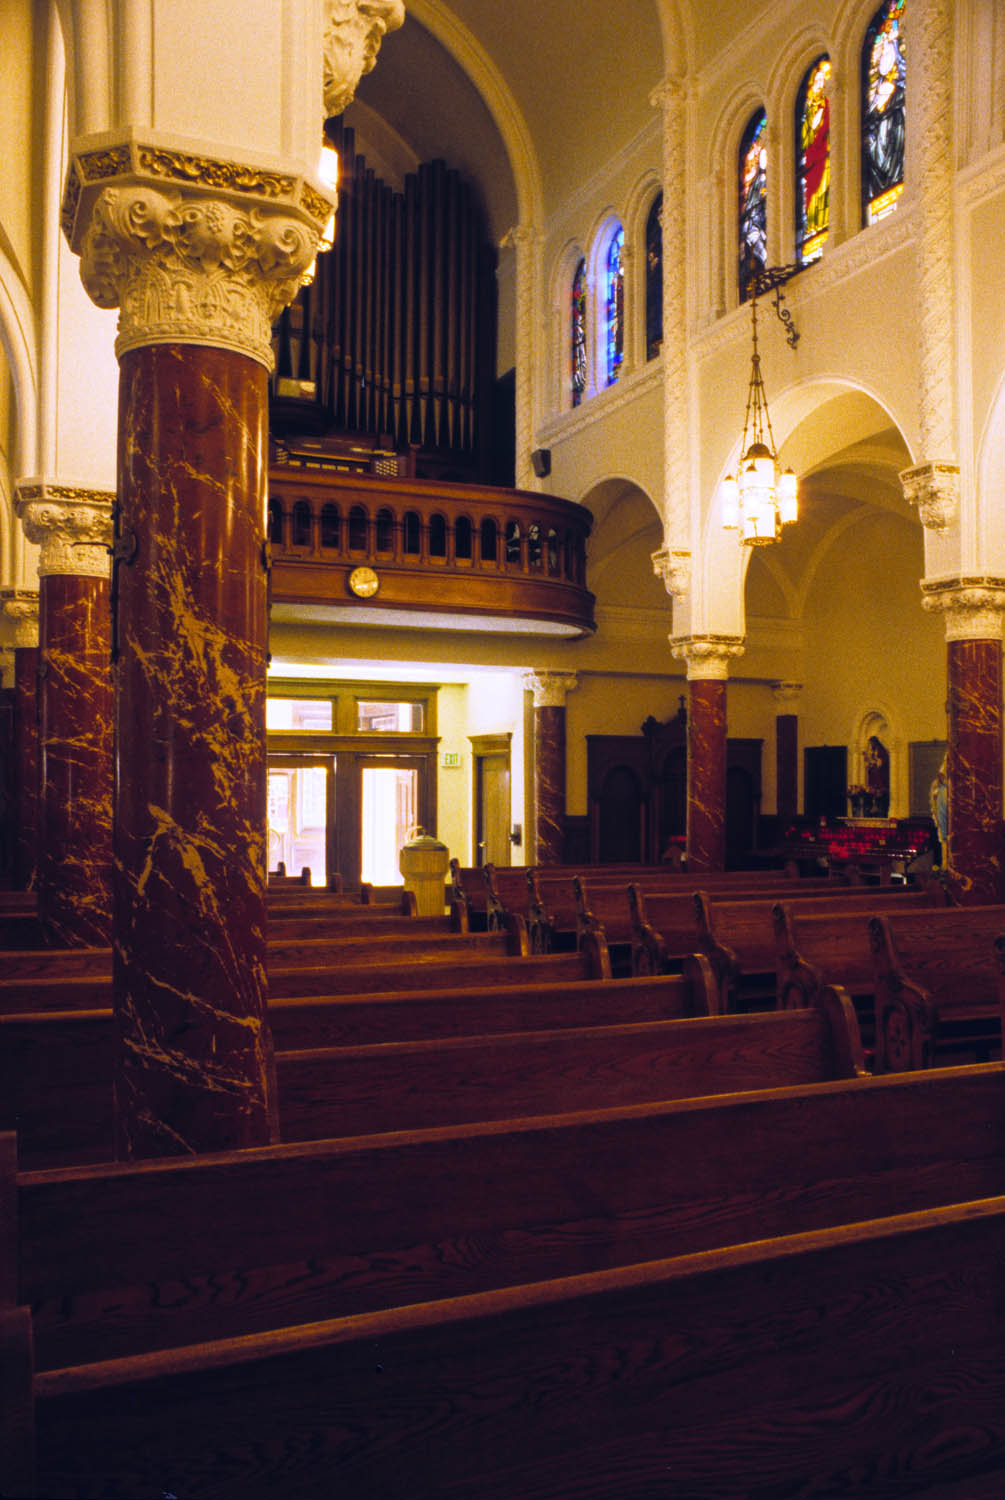 The original and valuable pipe organ had to be carefully protected during construction. The console and echo organs, close to the line of th e shear walls, had to be removed and re-installed. Parts of the instrument were upgraded, and the entire system was re-tuned.At the level of the nave, the entry was reworked to accommodate the new shear walls, behind which the elevator and elevator lobby on one side, and a reconciliation room on the other, are located.